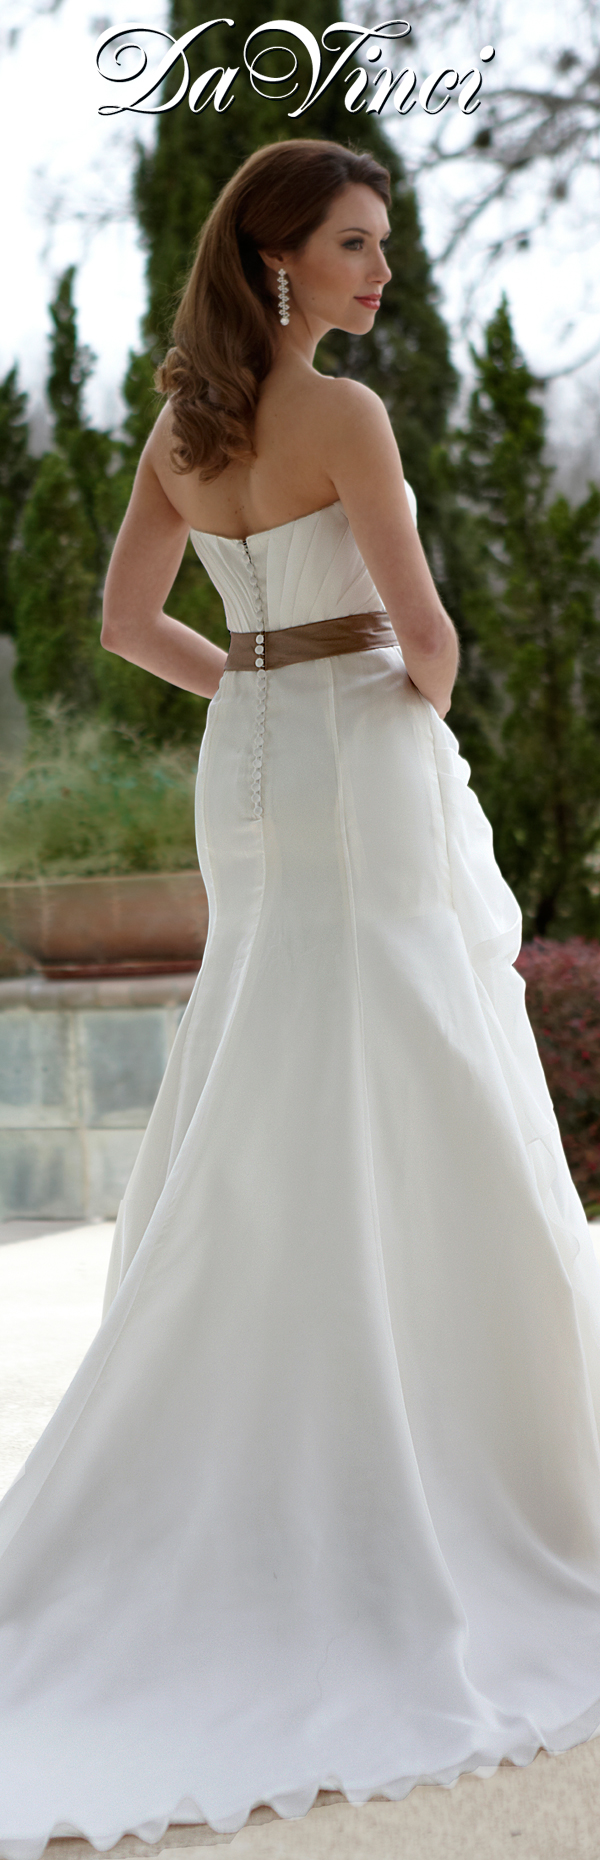 Davinci bridal style organza fit and flare gown with straight